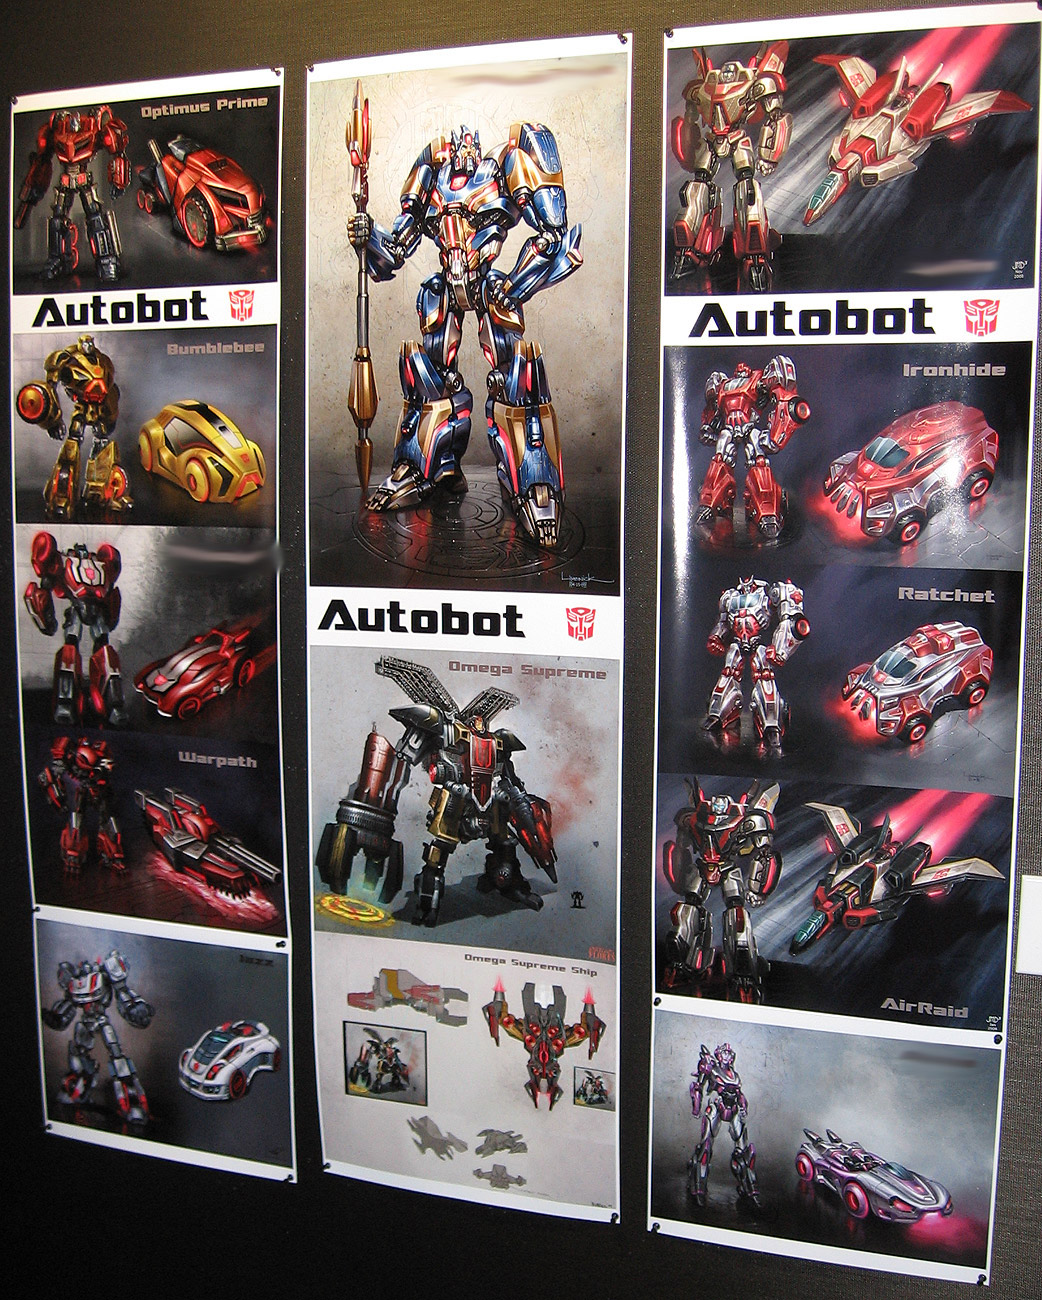 http://www.tfw2005.com/transformers-news/attach/4/5/1/9/3/war_for_cybertron_010_1272875227_thumb.jpg